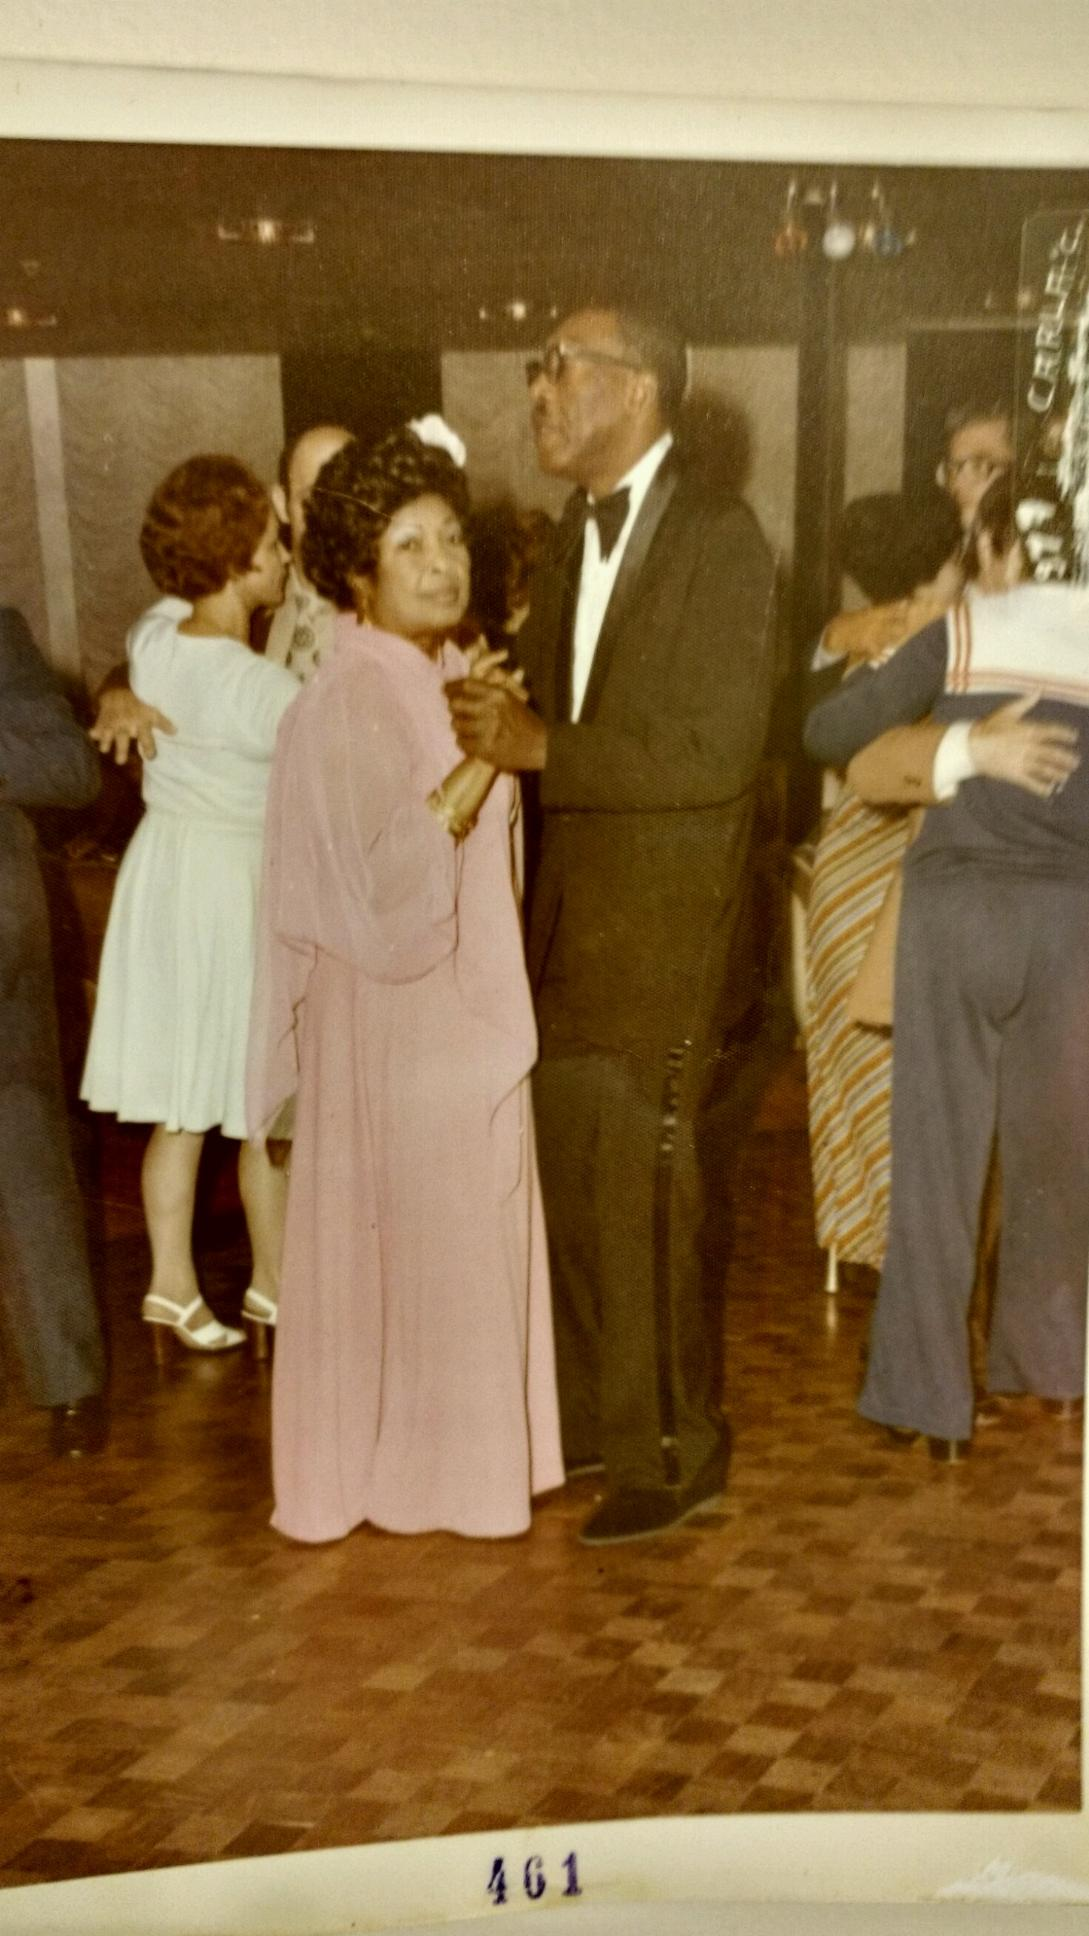 Sidney and Abigail were married for 53 years.